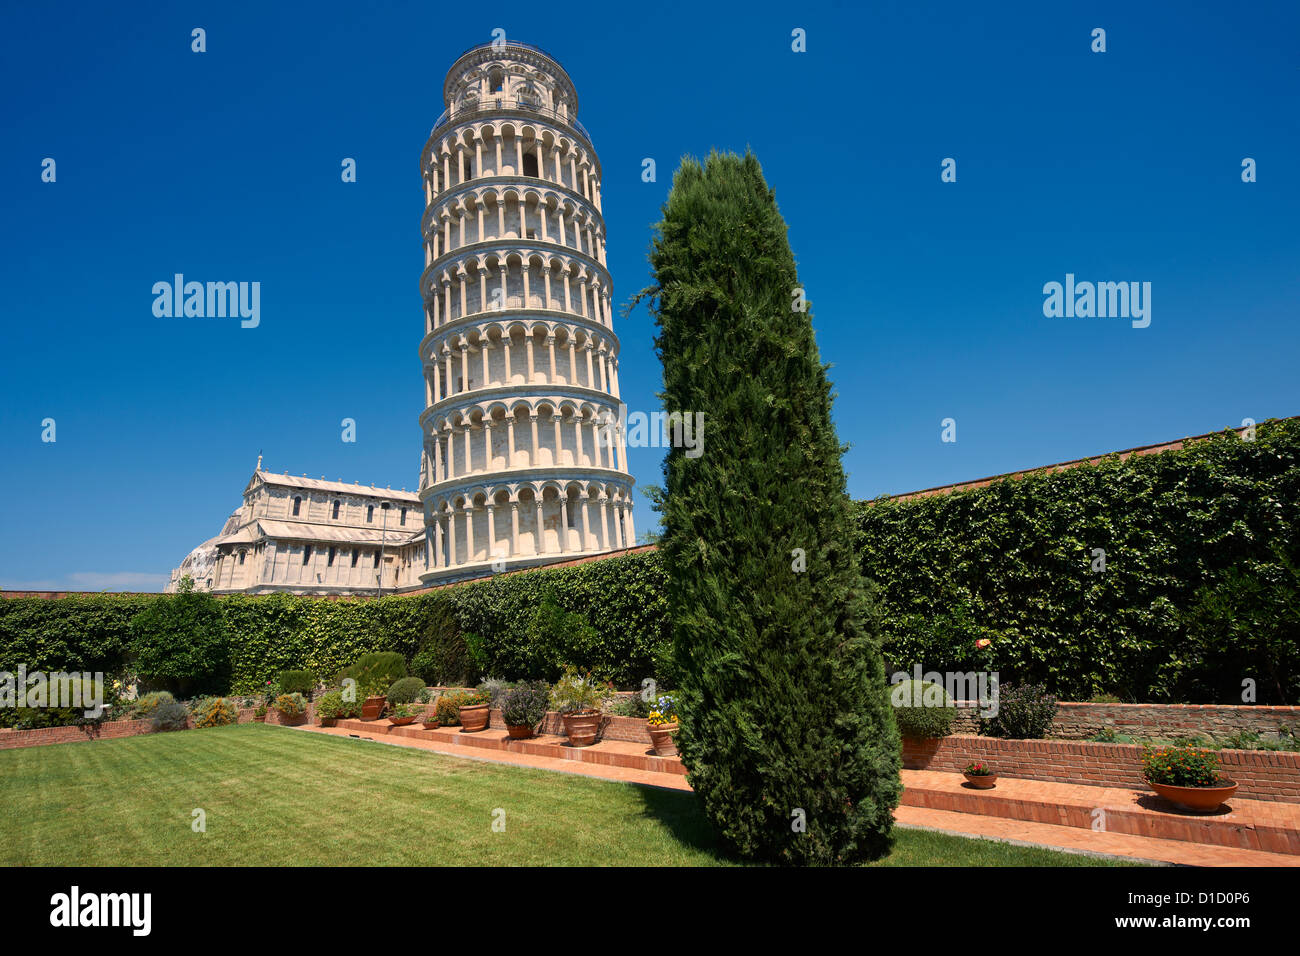 The Leaning Tower Of Pisa, Italy against a blue sky Stock Photo